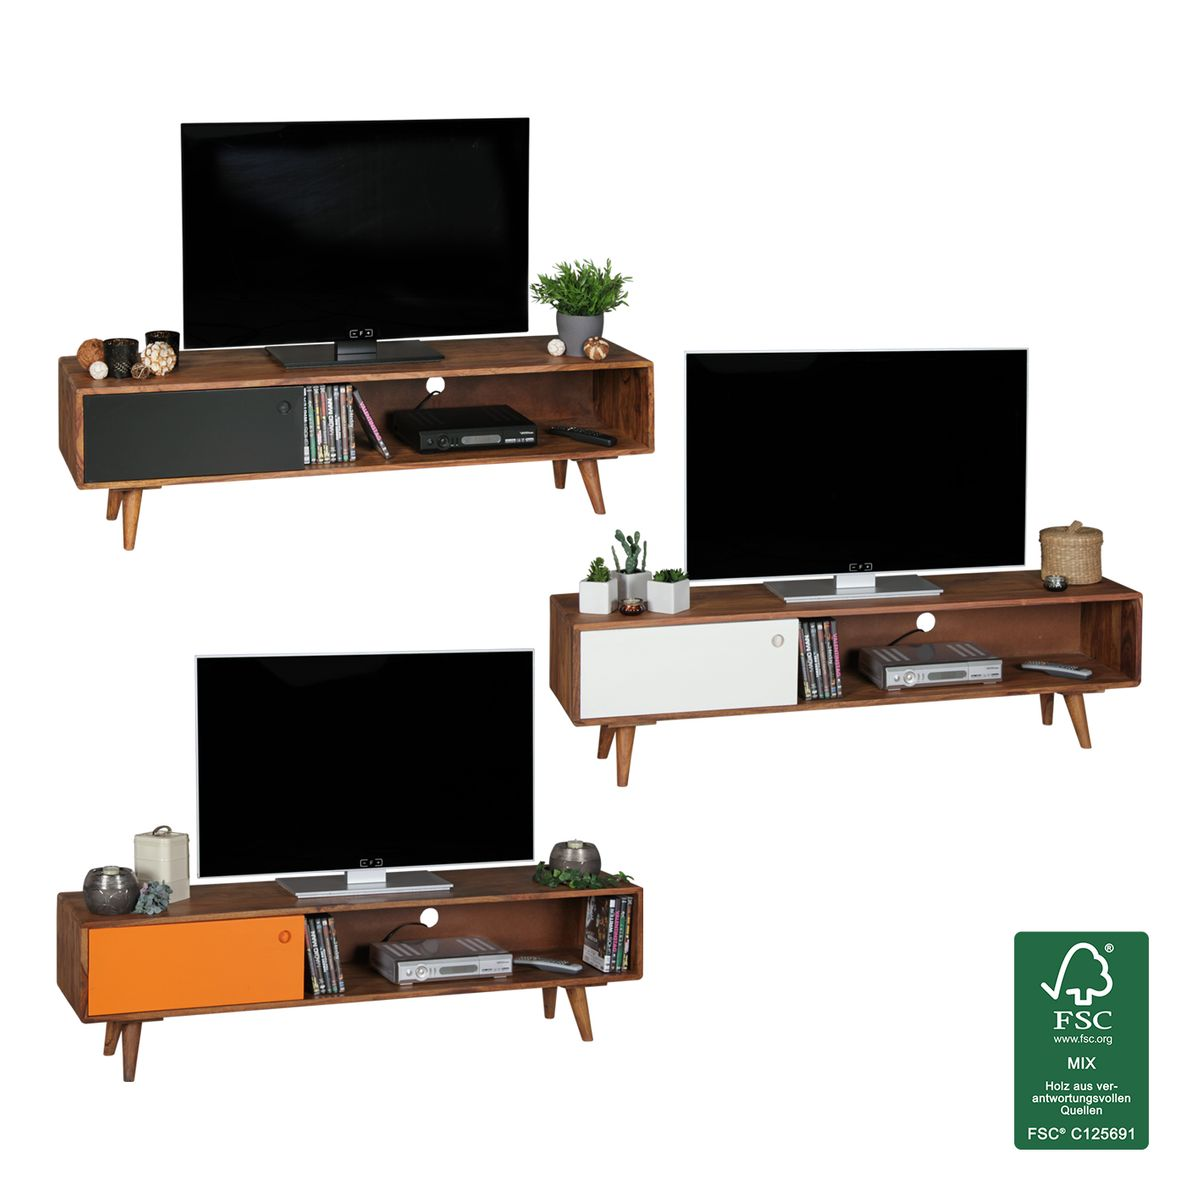 lowboard mit t r tv hifi regal retro fernsehschrank. Black Bedroom Furniture Sets. Home Design Ideas